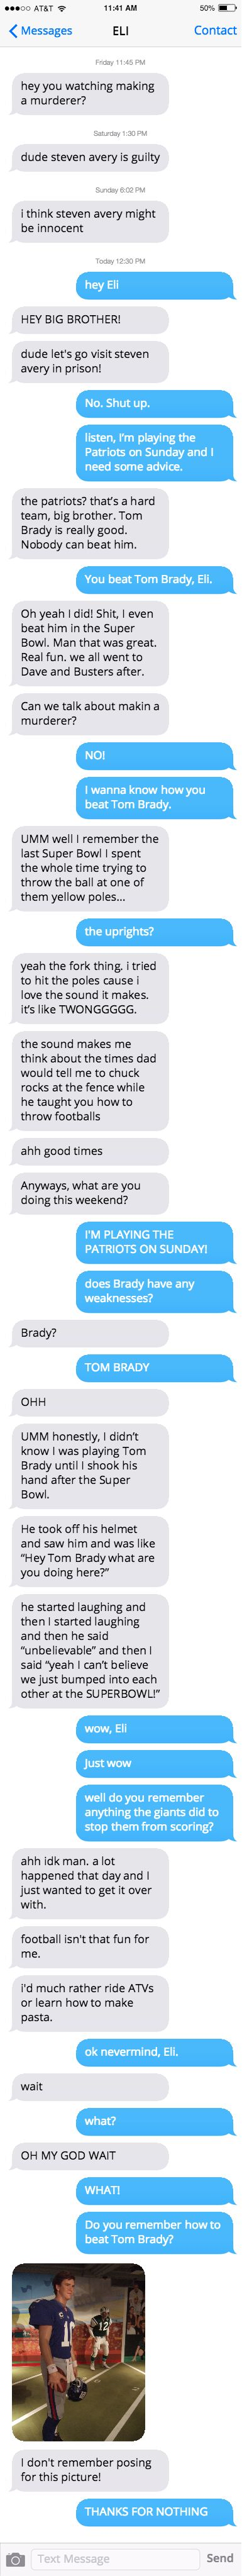 The Totally Real Text Convo Peyton And Eli Manning Had About Tom Brady